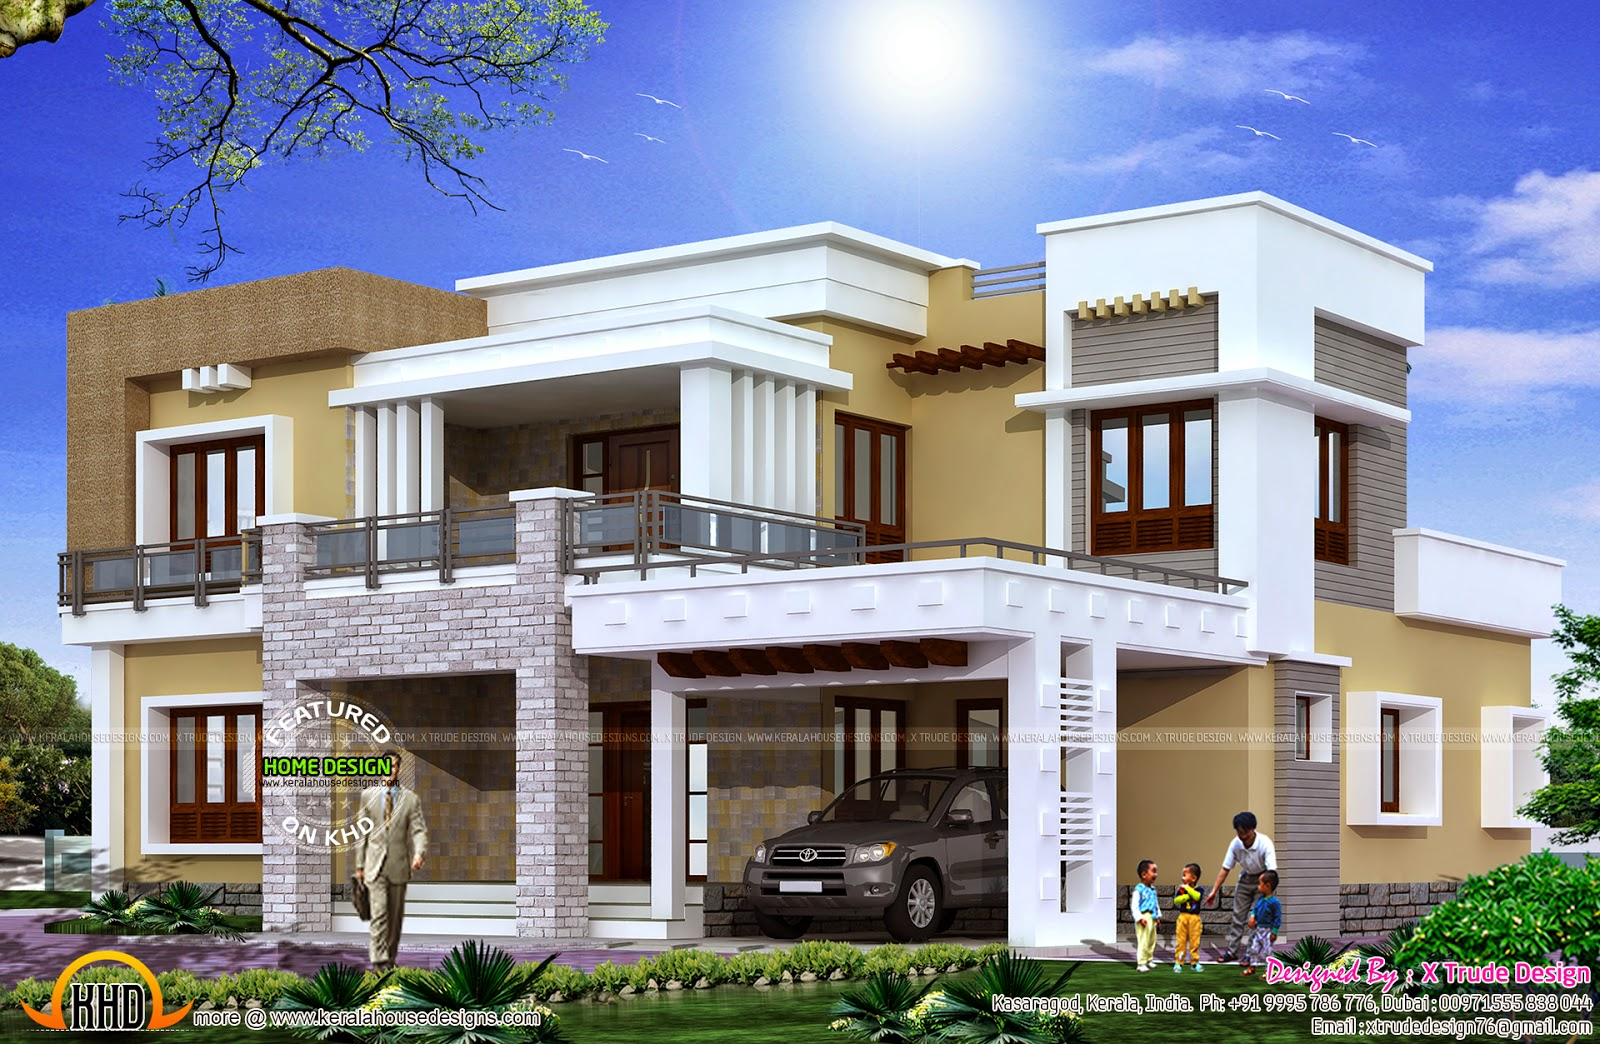 3710 sq ft tamilnadu house design bedrooms 5 open for Modern house design 2015 philippines